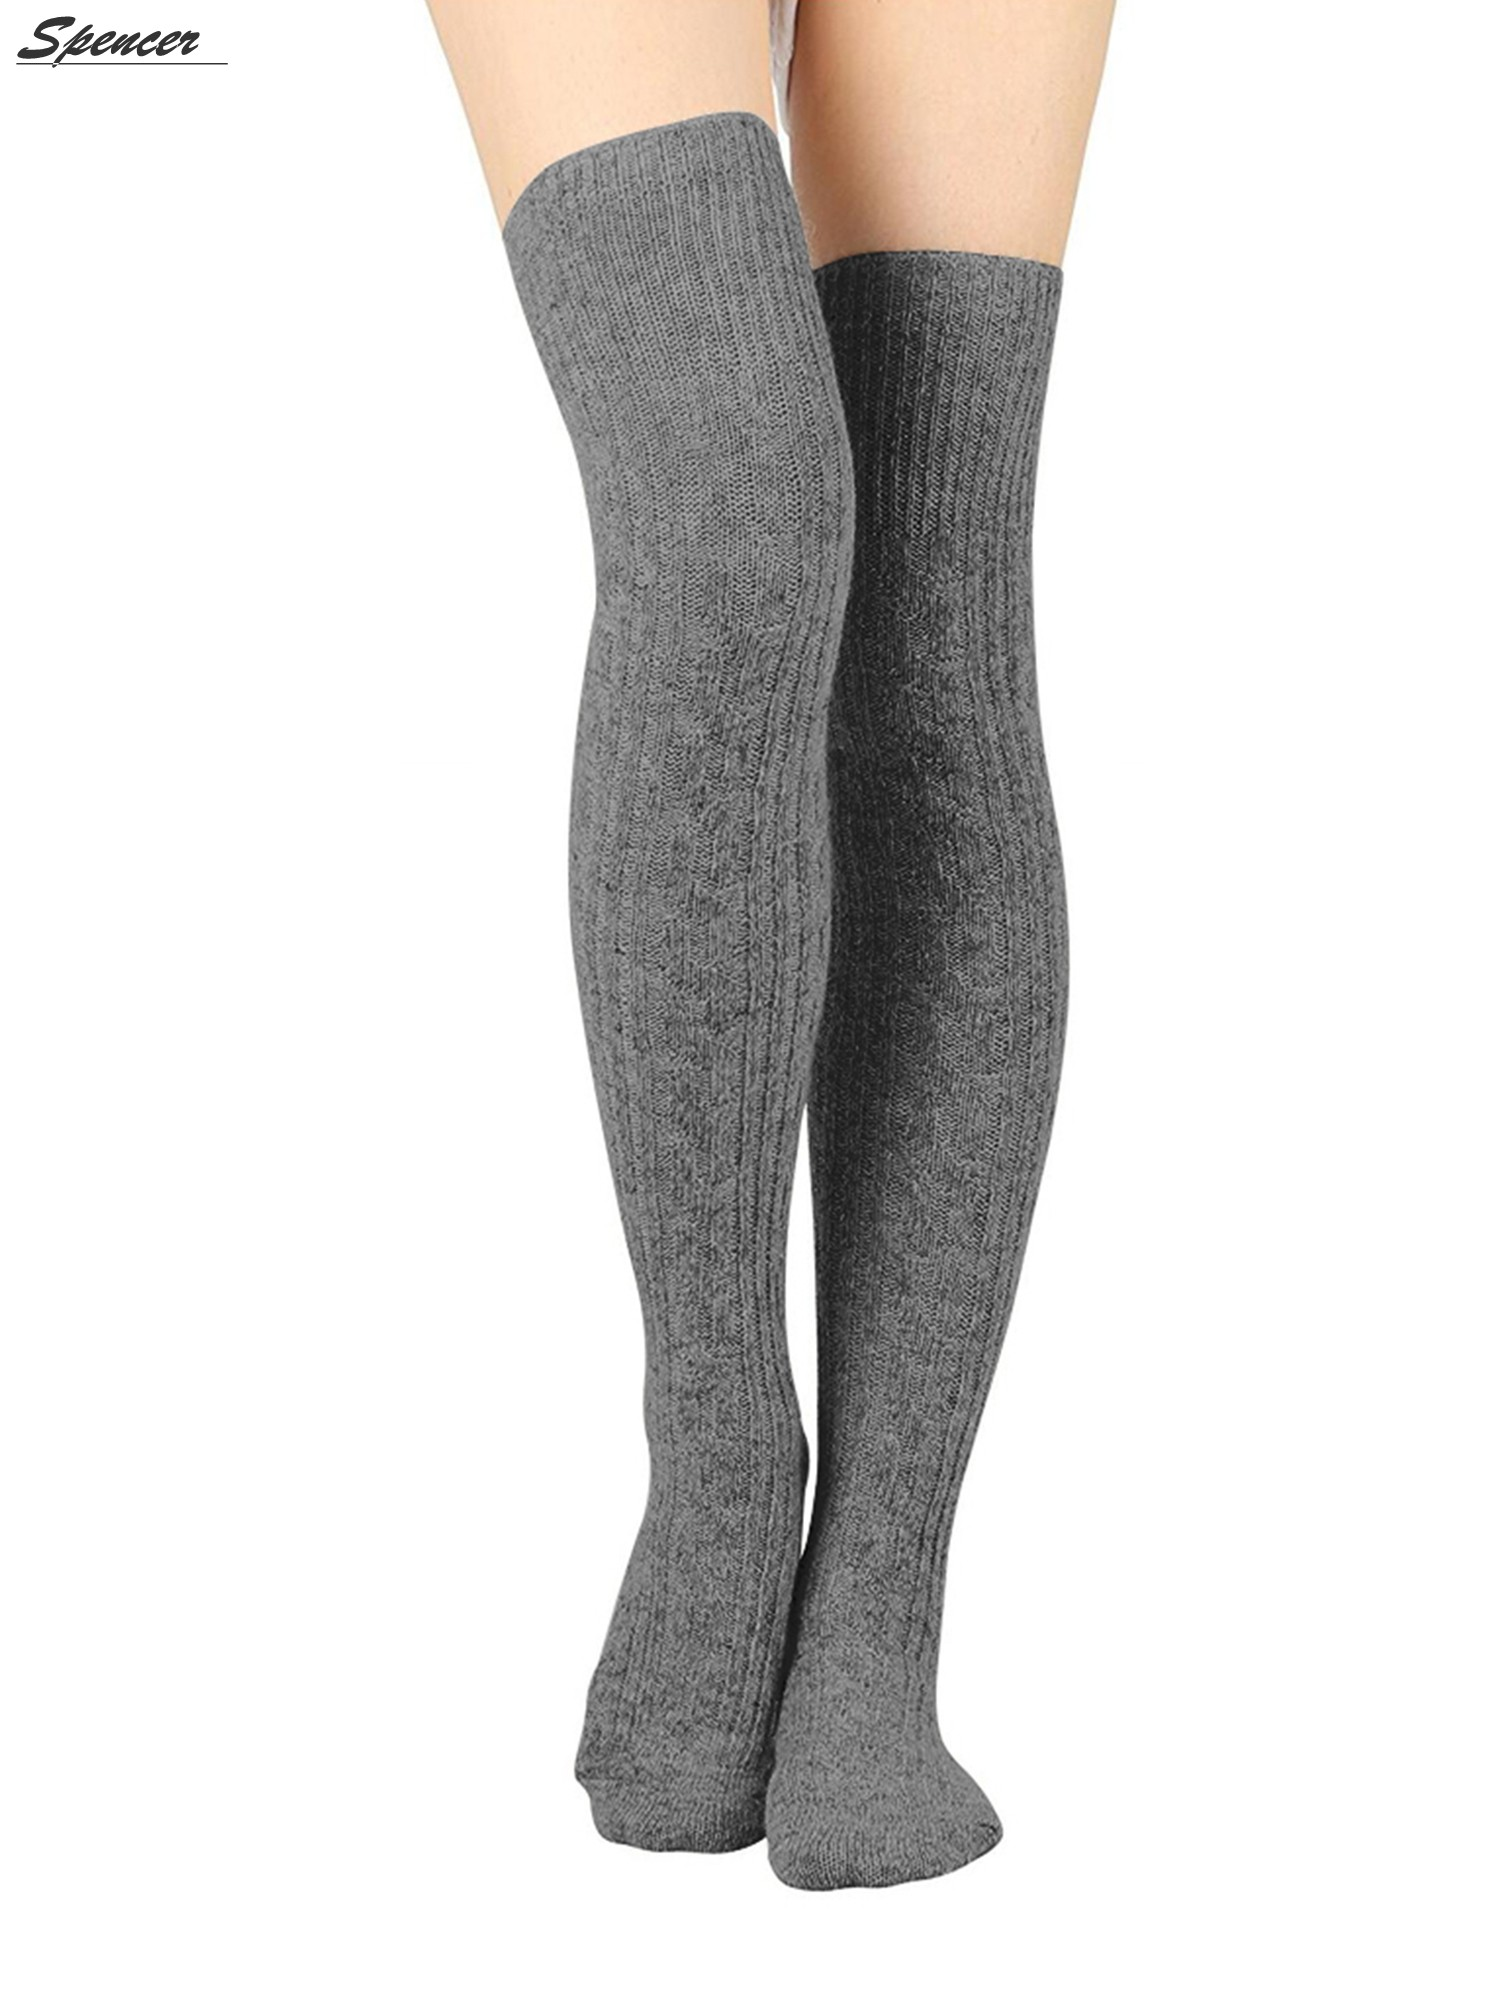 3f52e15c19c06 Spencer - Spencer Women Thigh High Socks Over the Knee Leg Warmer Tall Long  Boot Knit Stocking Girls Leggings